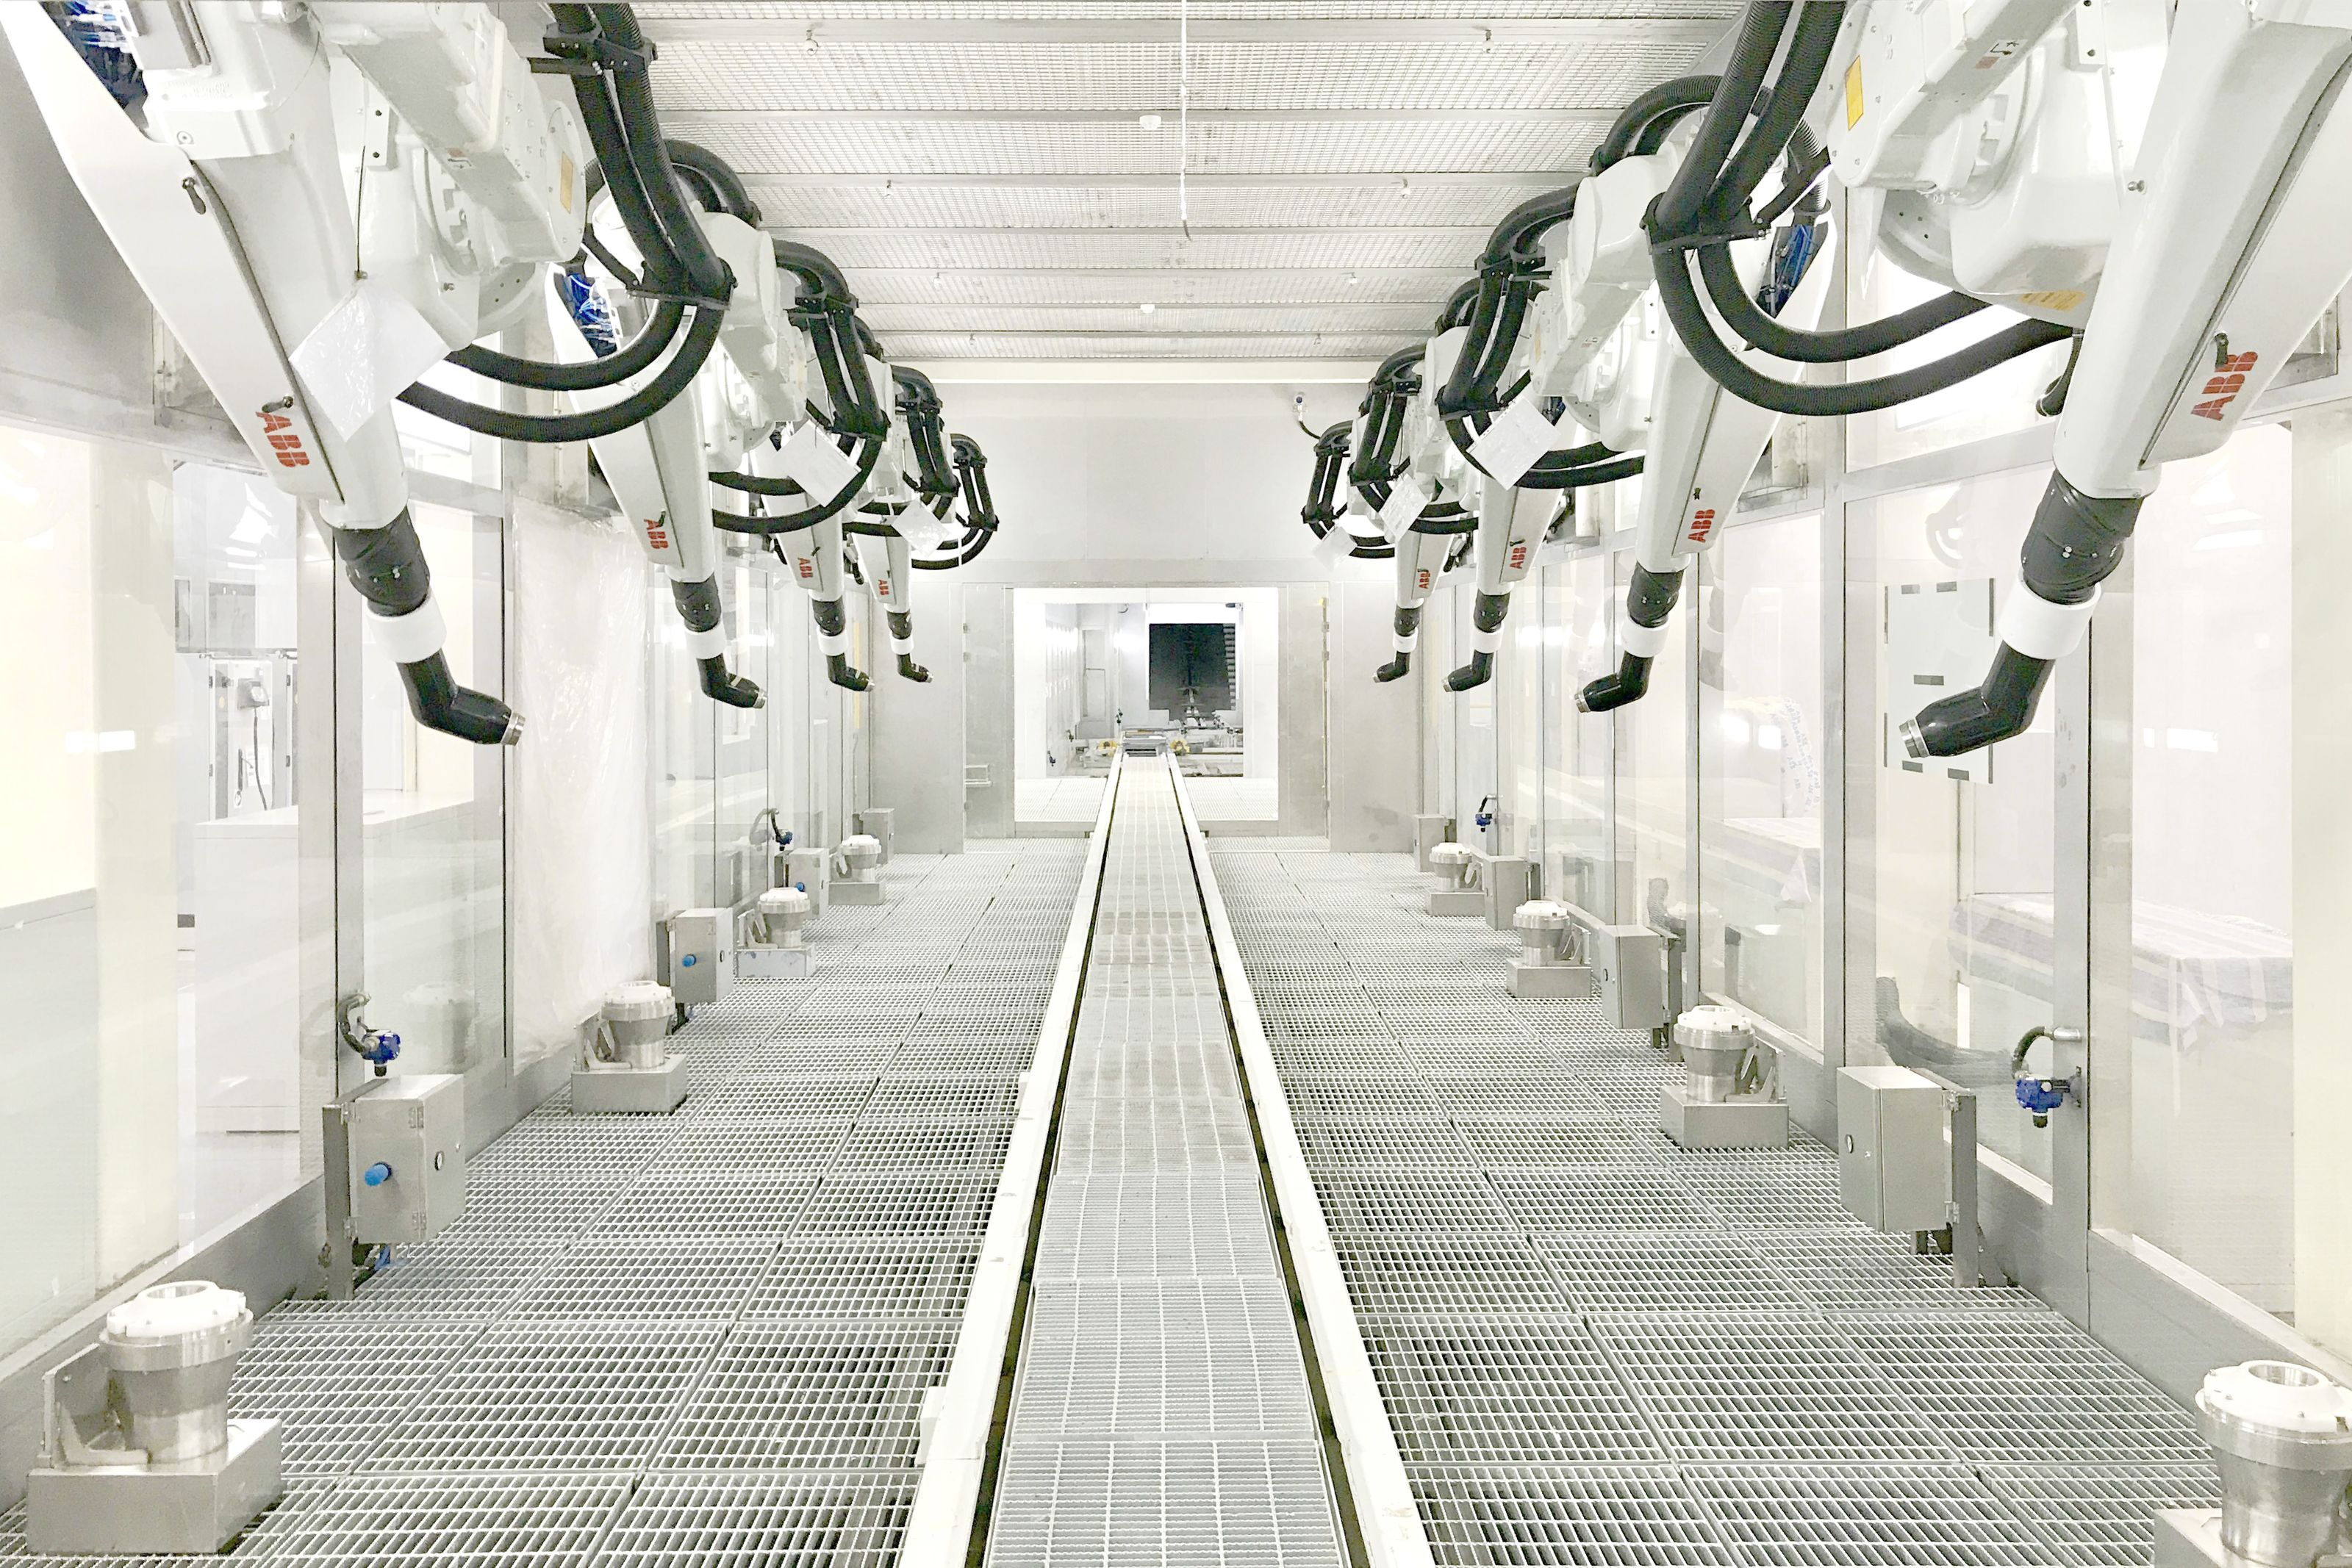 Modern collaborative robots are providing flexibility across multiple industries including distribution